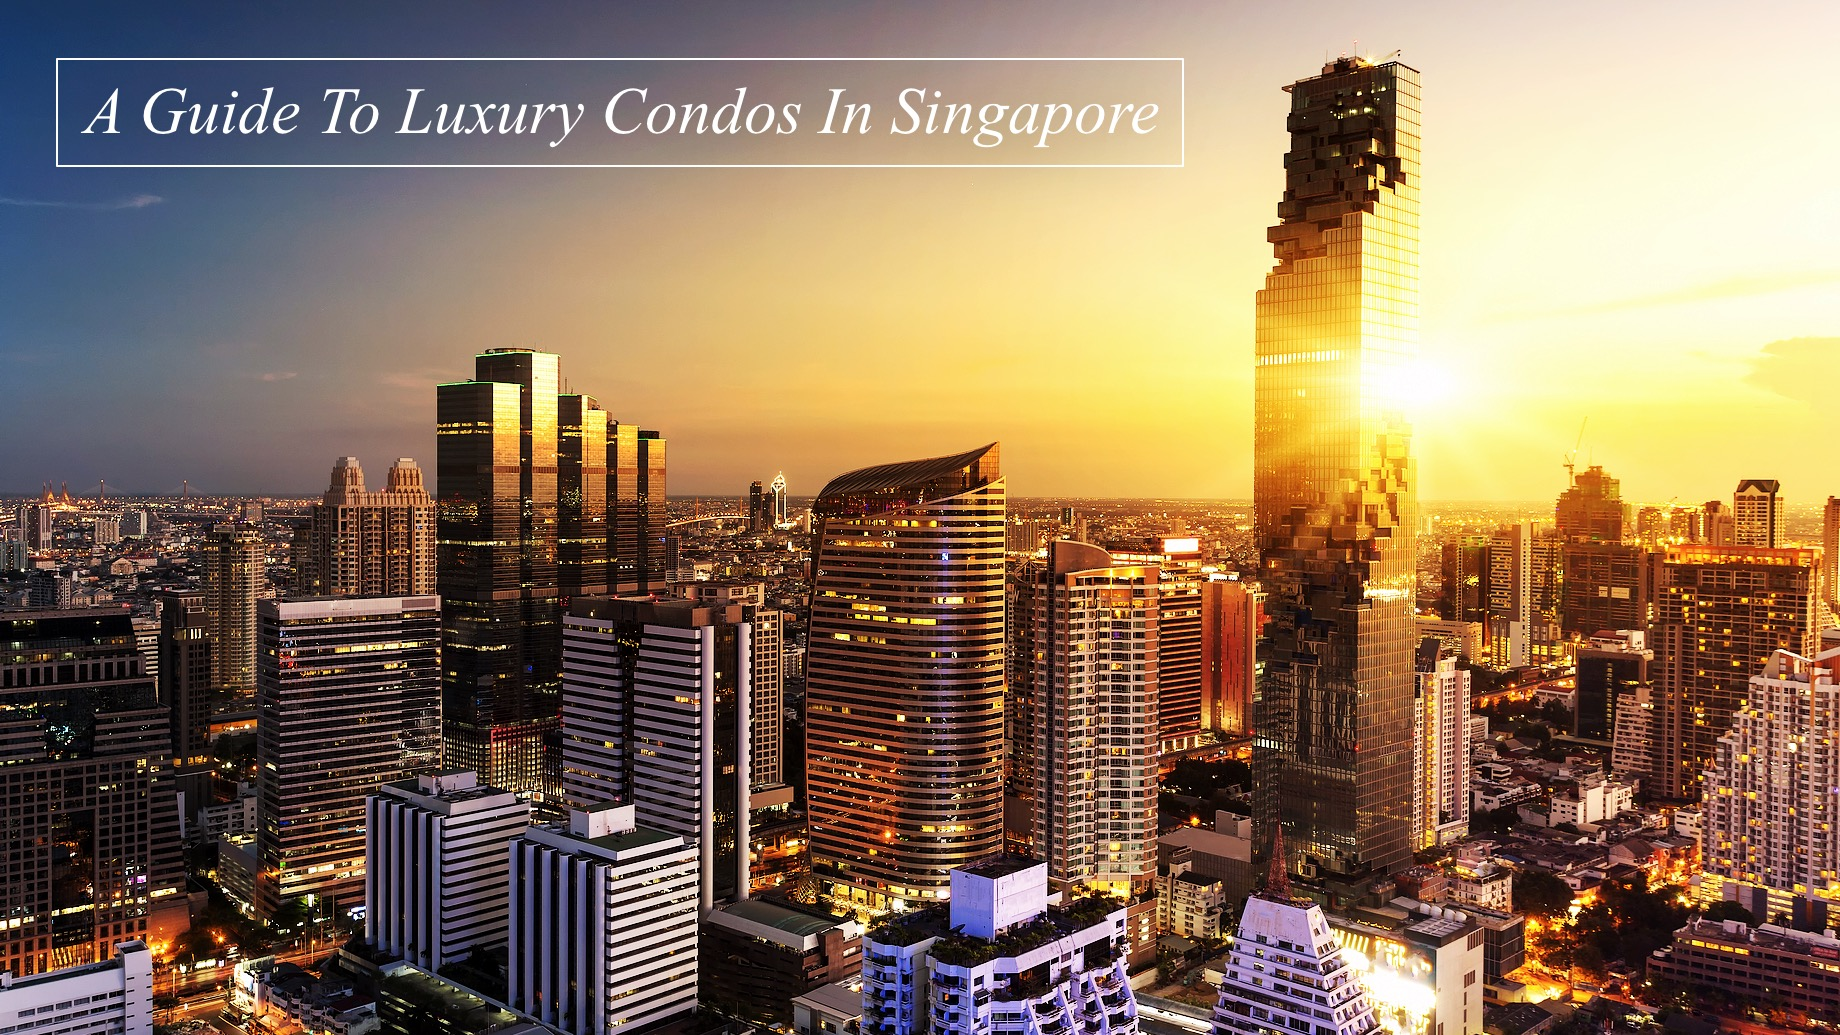 A Guide To Luxury Condos In Singapore